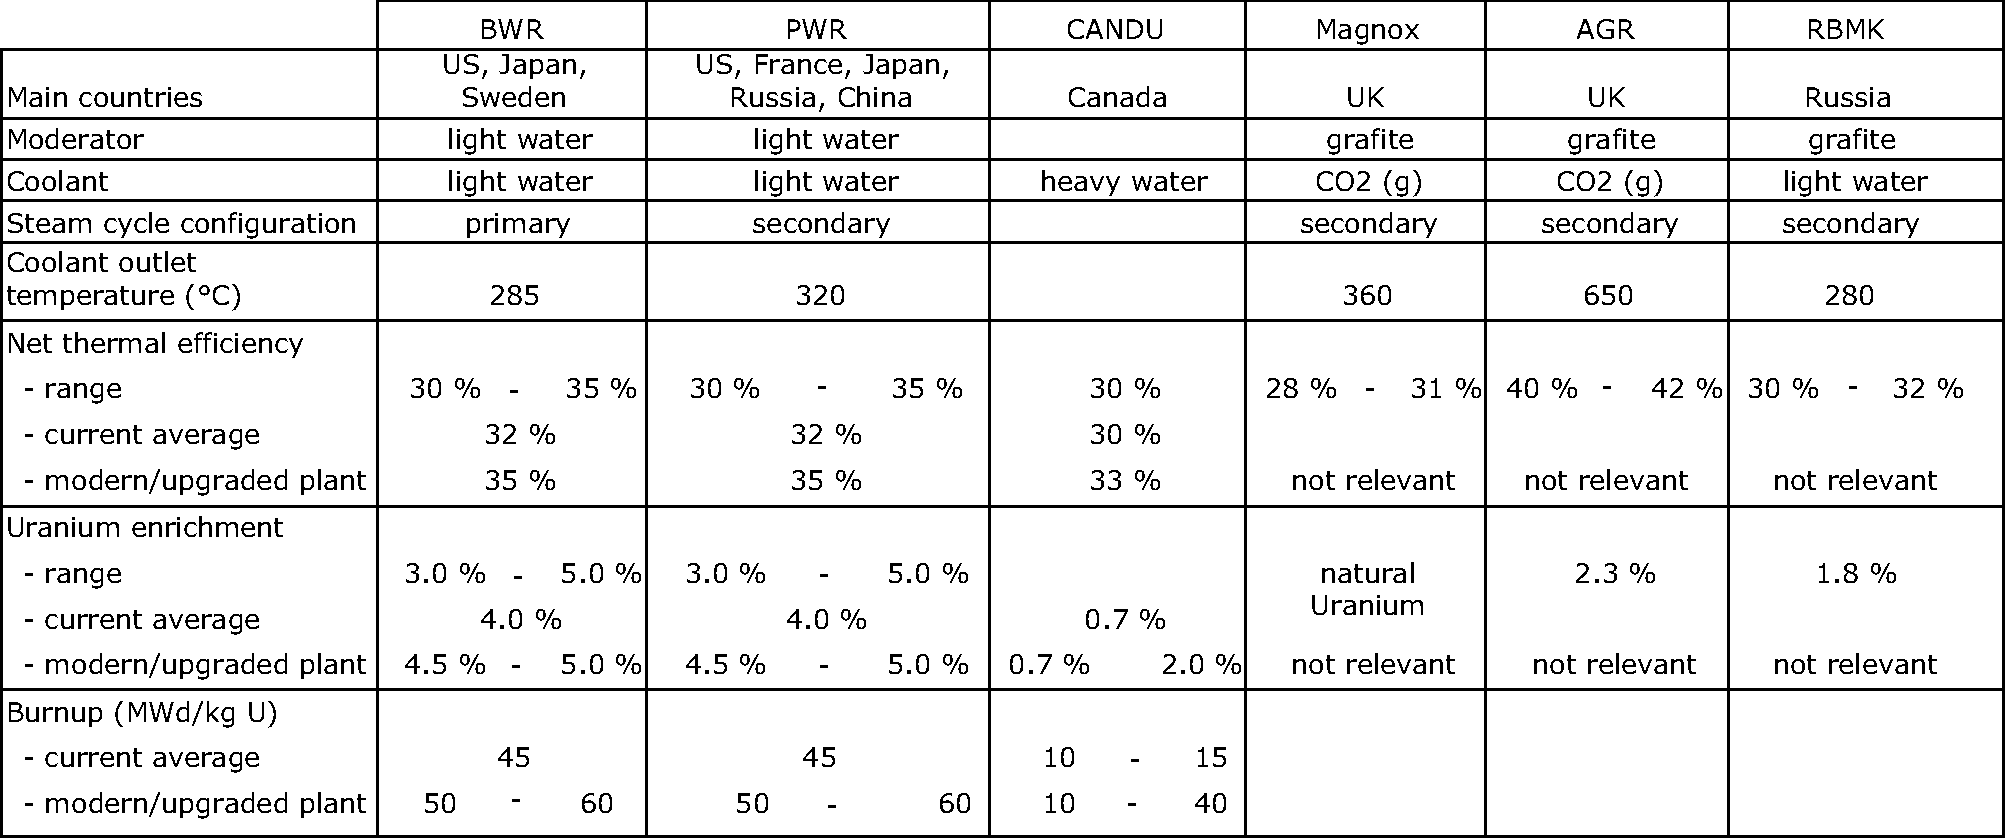 Indicative specifications for different reactor types